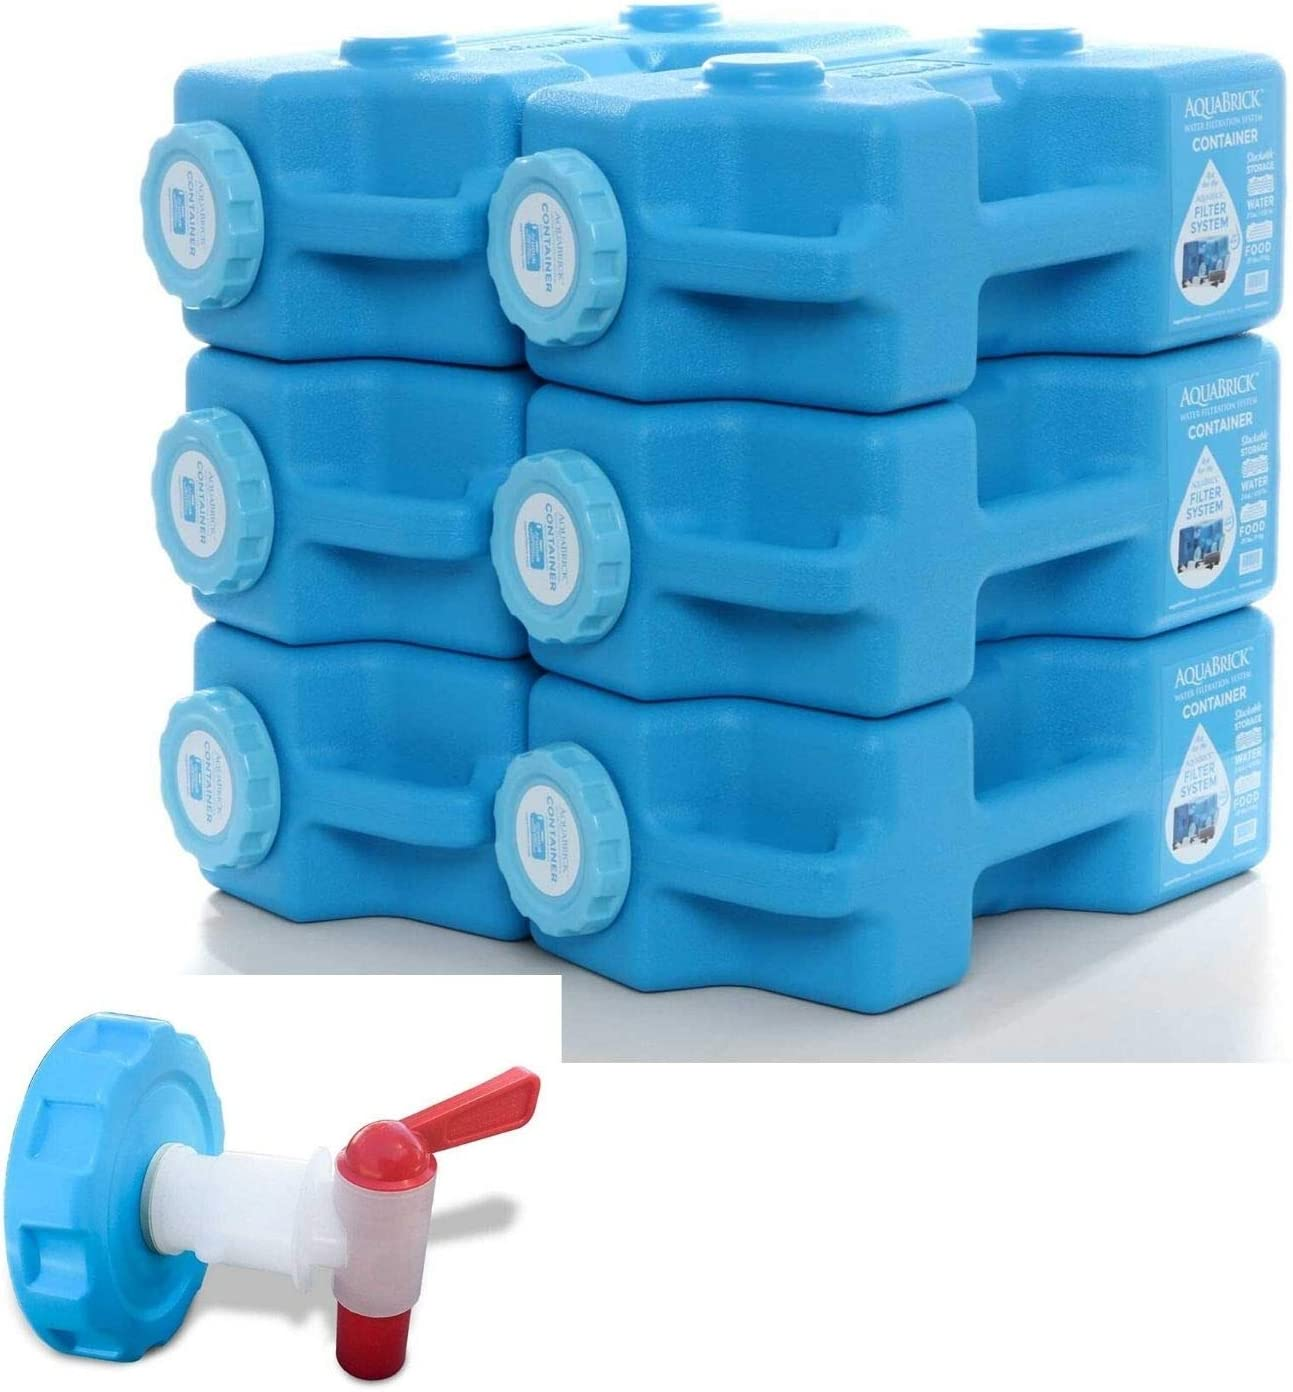 AquaBrick Storage Containers w Ventless Spigot Cap, Portable Stackable Water Storage Containers 3 Gal, Long Term Food Storage Containers 20 lbs, Outdoor Beverage Dispenser, 6 Cont PK + Spigot